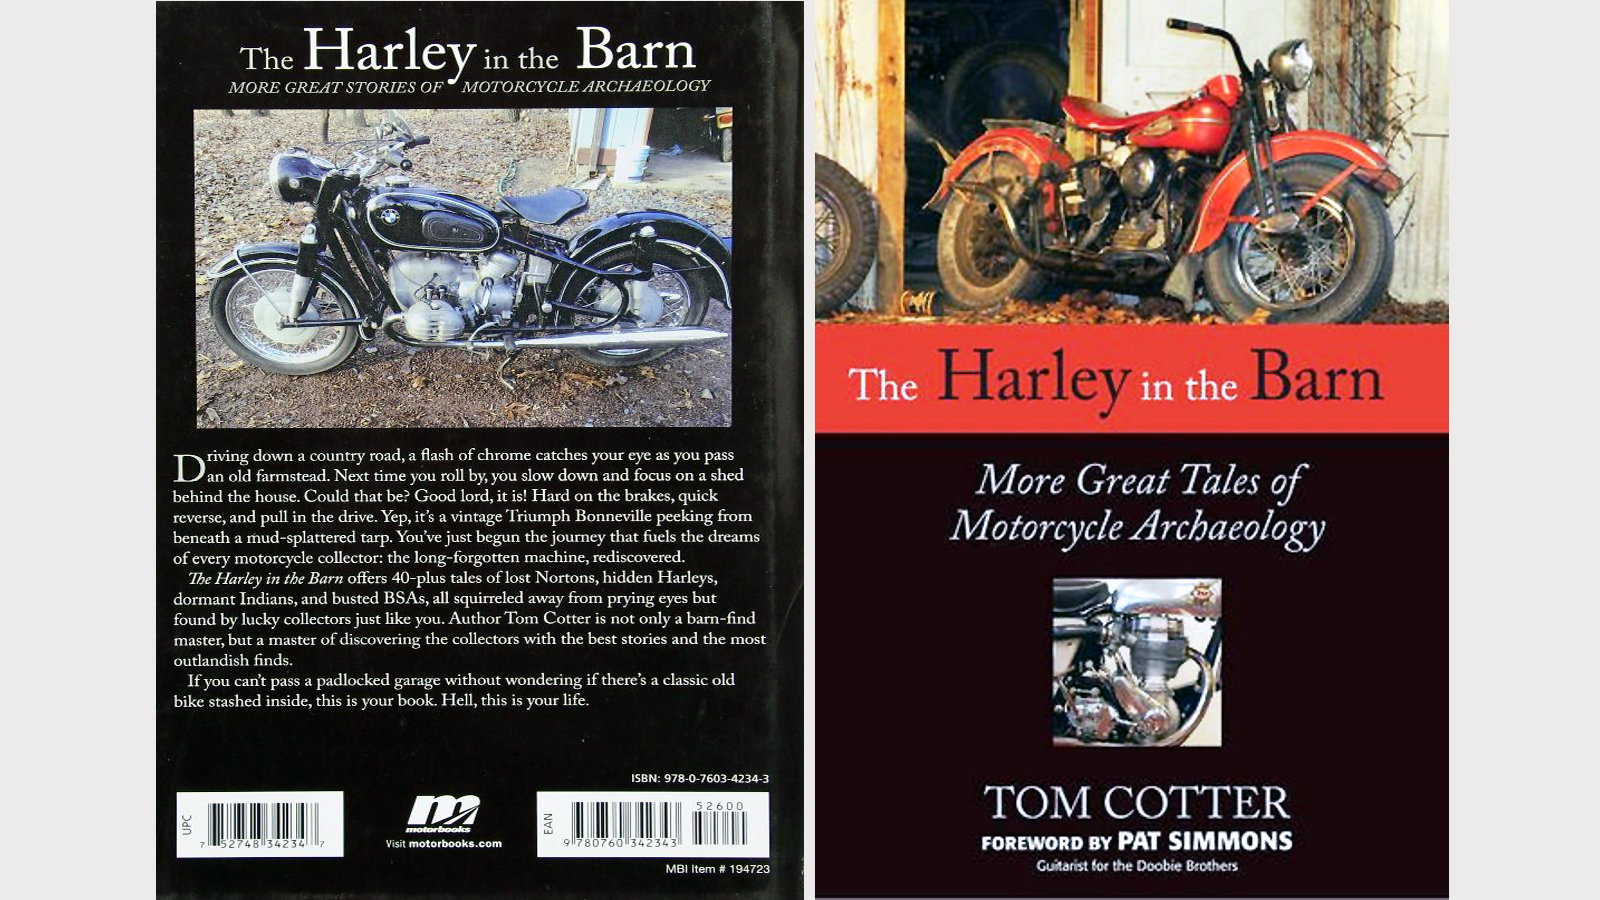 The Harley in the Barn: More Great Tales of Motorcycle Archaeology - Tom Cotter